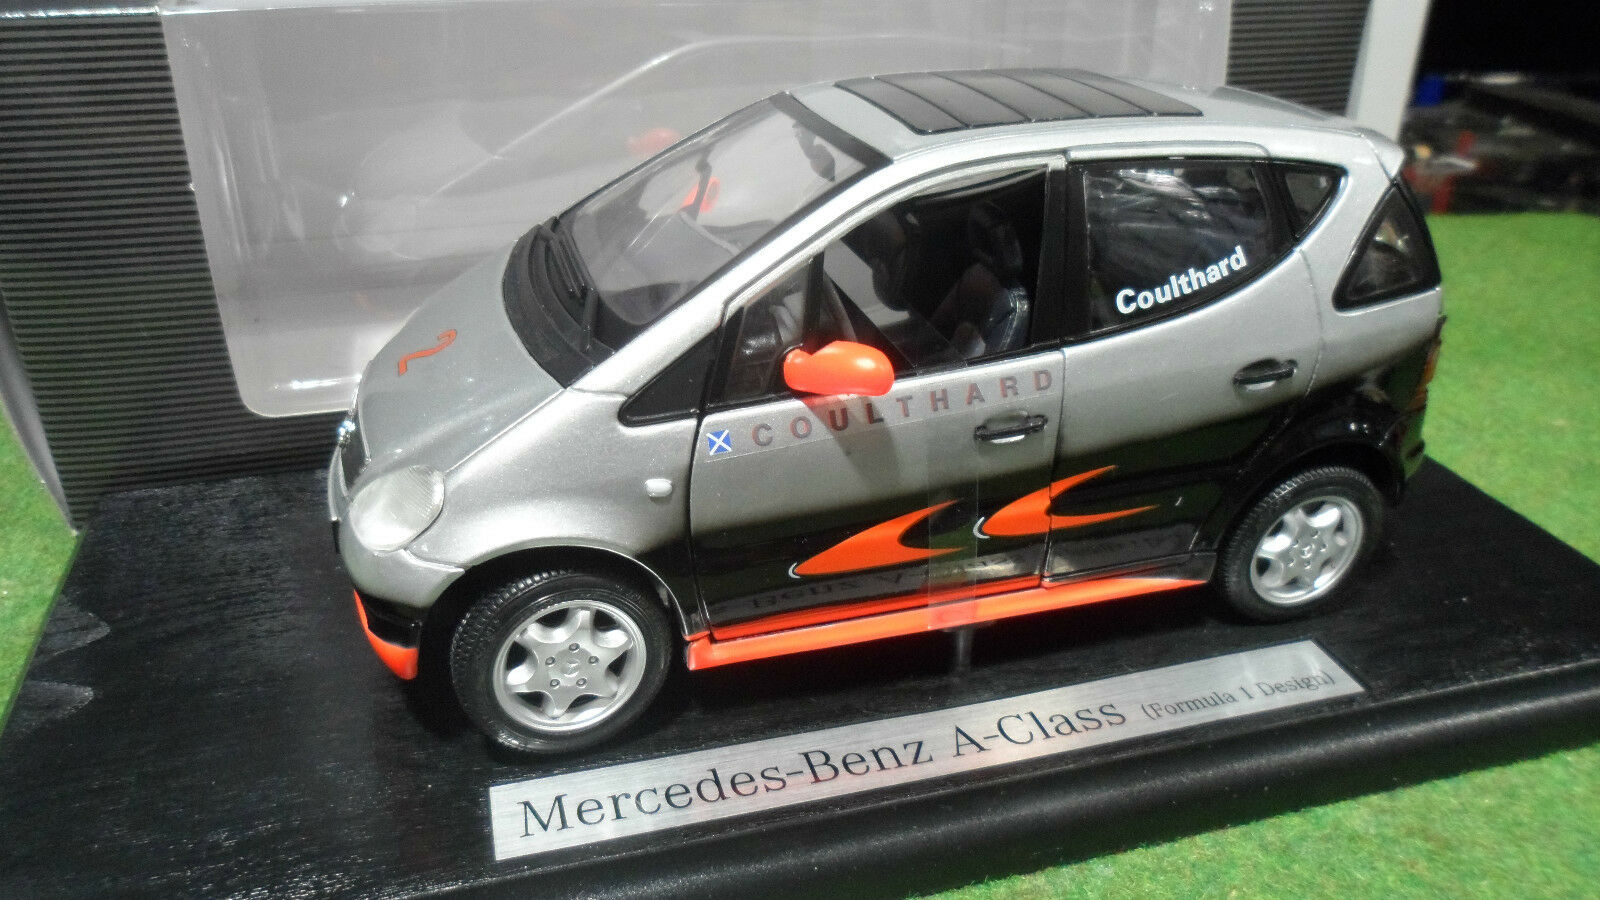 MERCEDES-BENZ A-CLASS F1 DESIGN COULTHARD 1/18 MAISTO B66960225 voiture miniatur